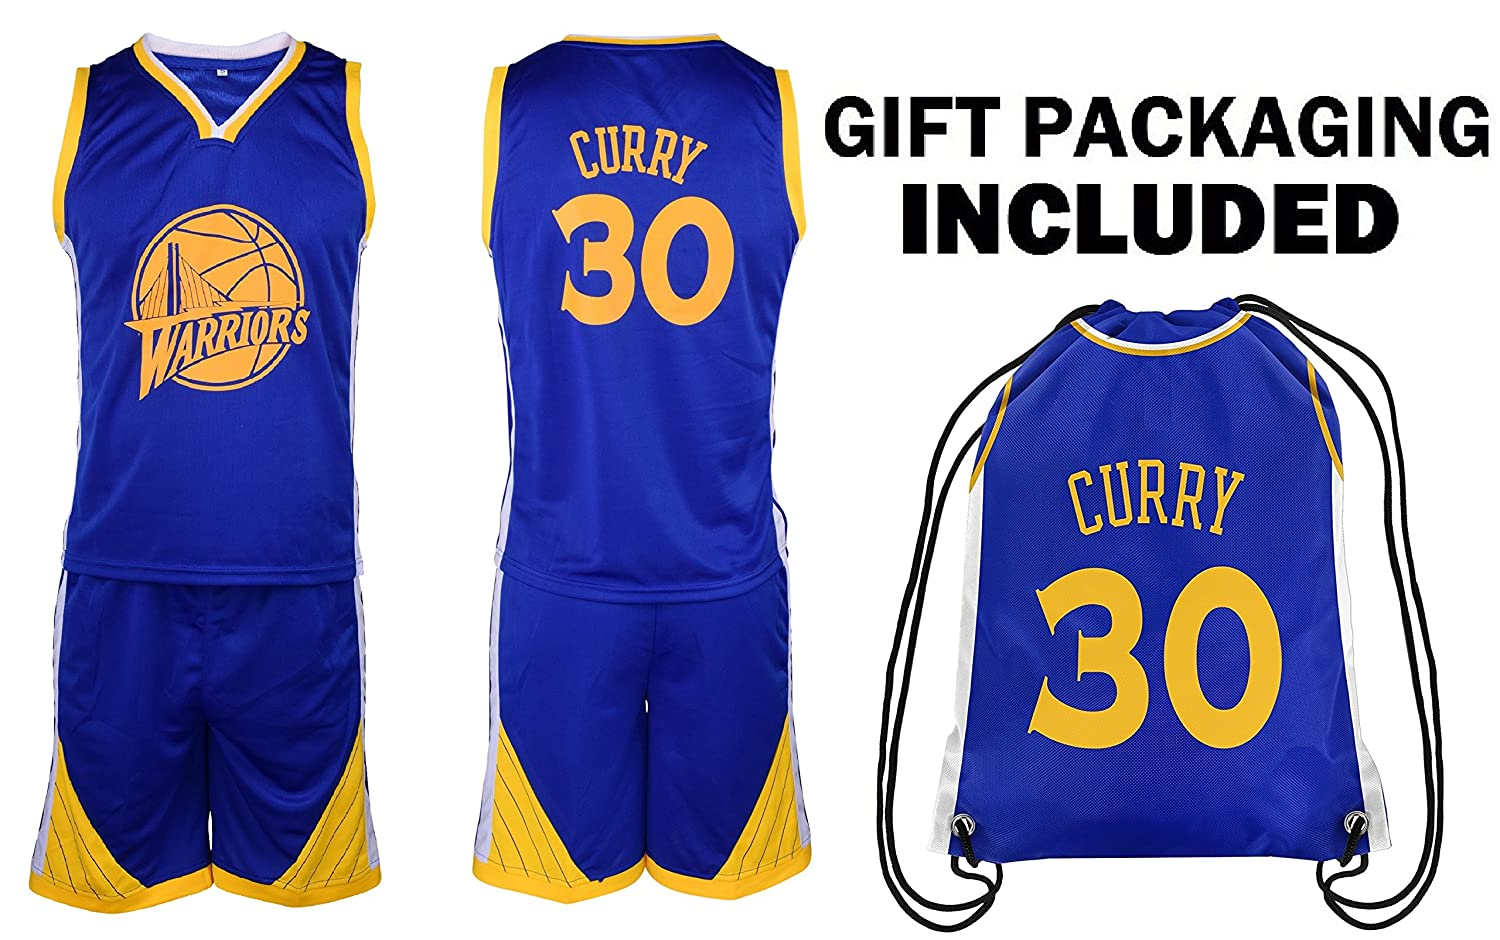 new style 21428 323aa Steph Curry Jersey Kids Basketball Curry Jersey & Shorts Youth Gift Set ✓  Premium Quality ✓ Basketball Backpack GIFT PACKAGING ✓